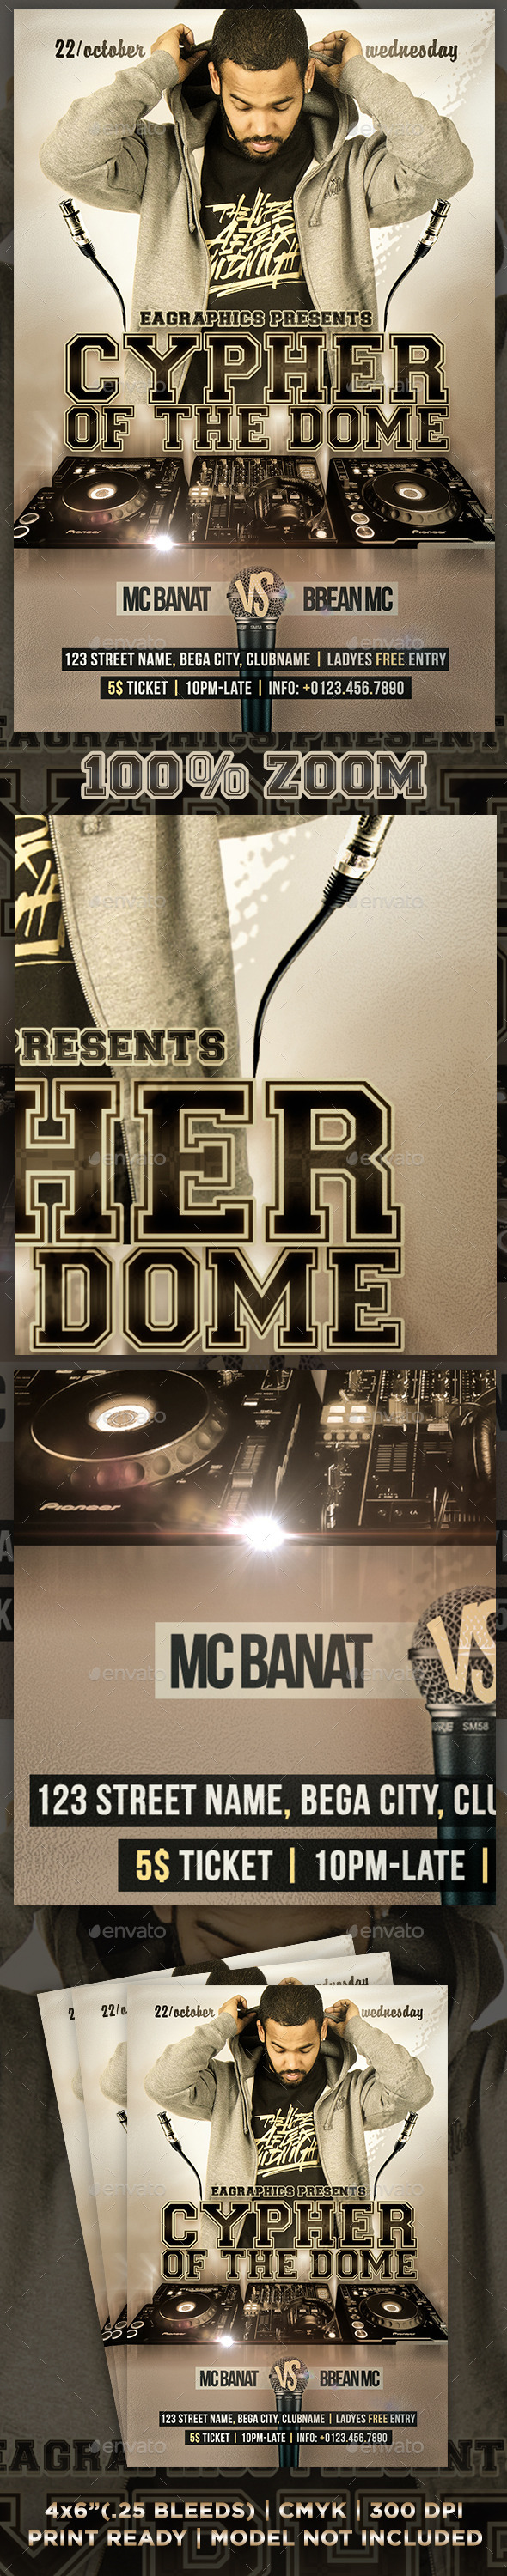 GraphicRiver Cypher Of The Dome Flyer 9059607